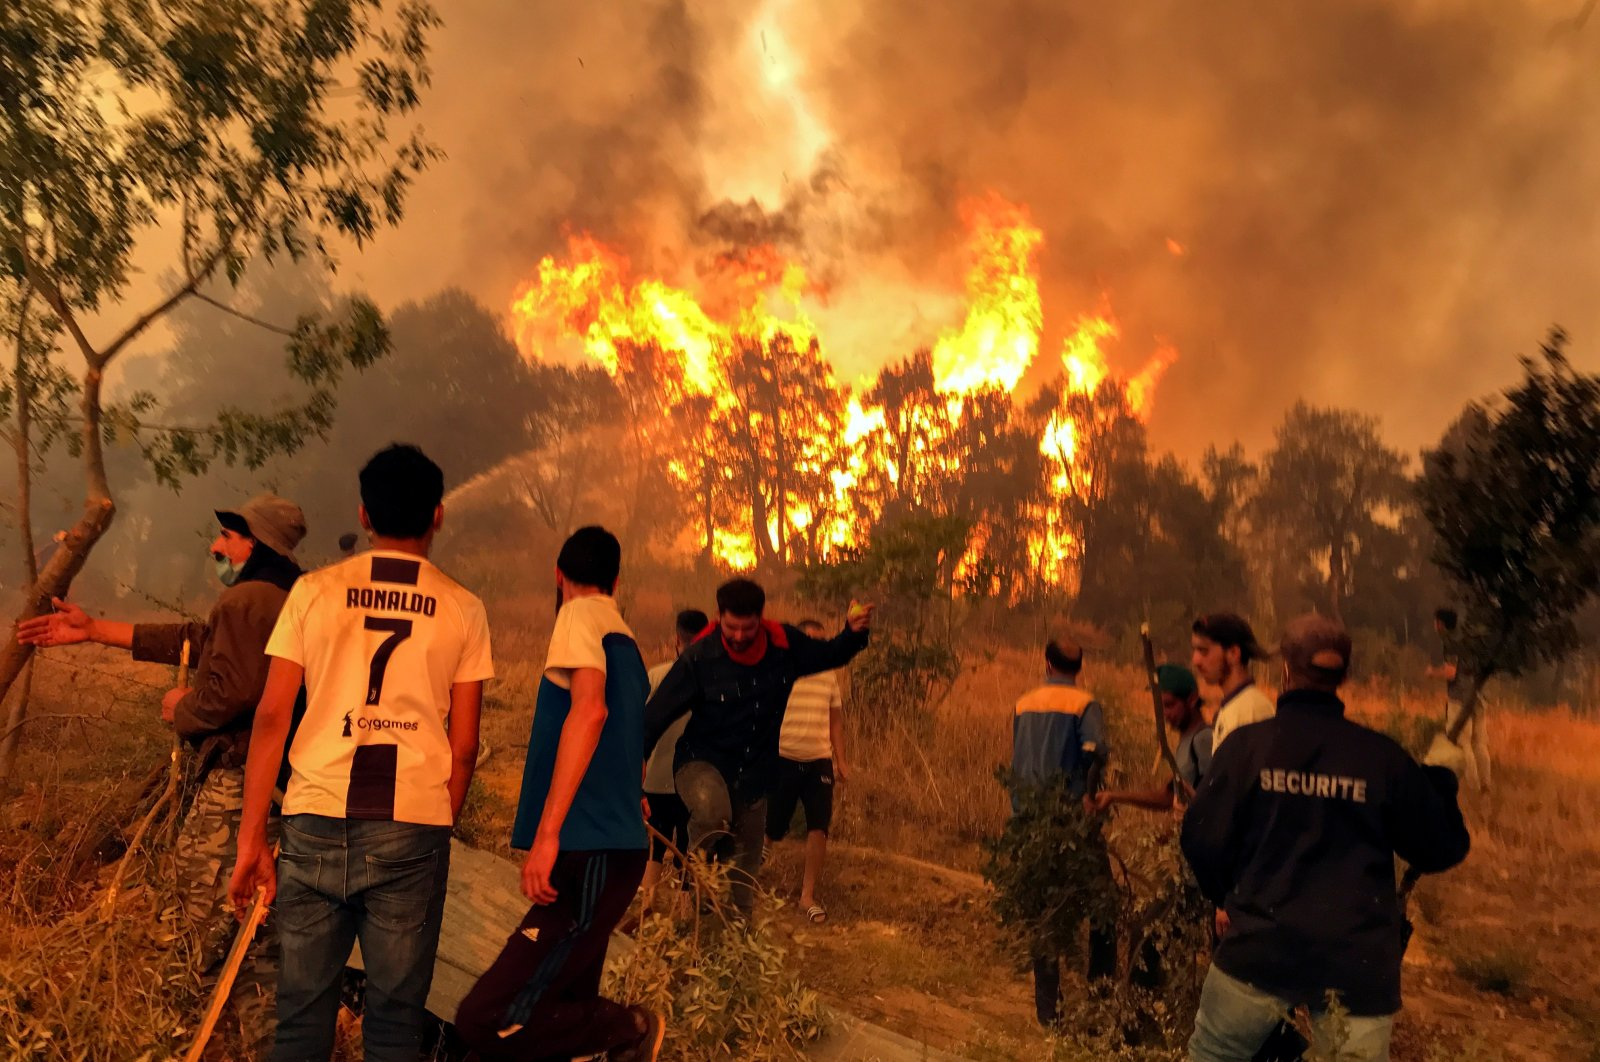 Villagers attempt to put out a wildfire in Achallam village, in the mountainous Kabylie region of Tizi Ouzou, east of Algiers, Algeria, Aug. 11, 2021. (Reuters Photo)